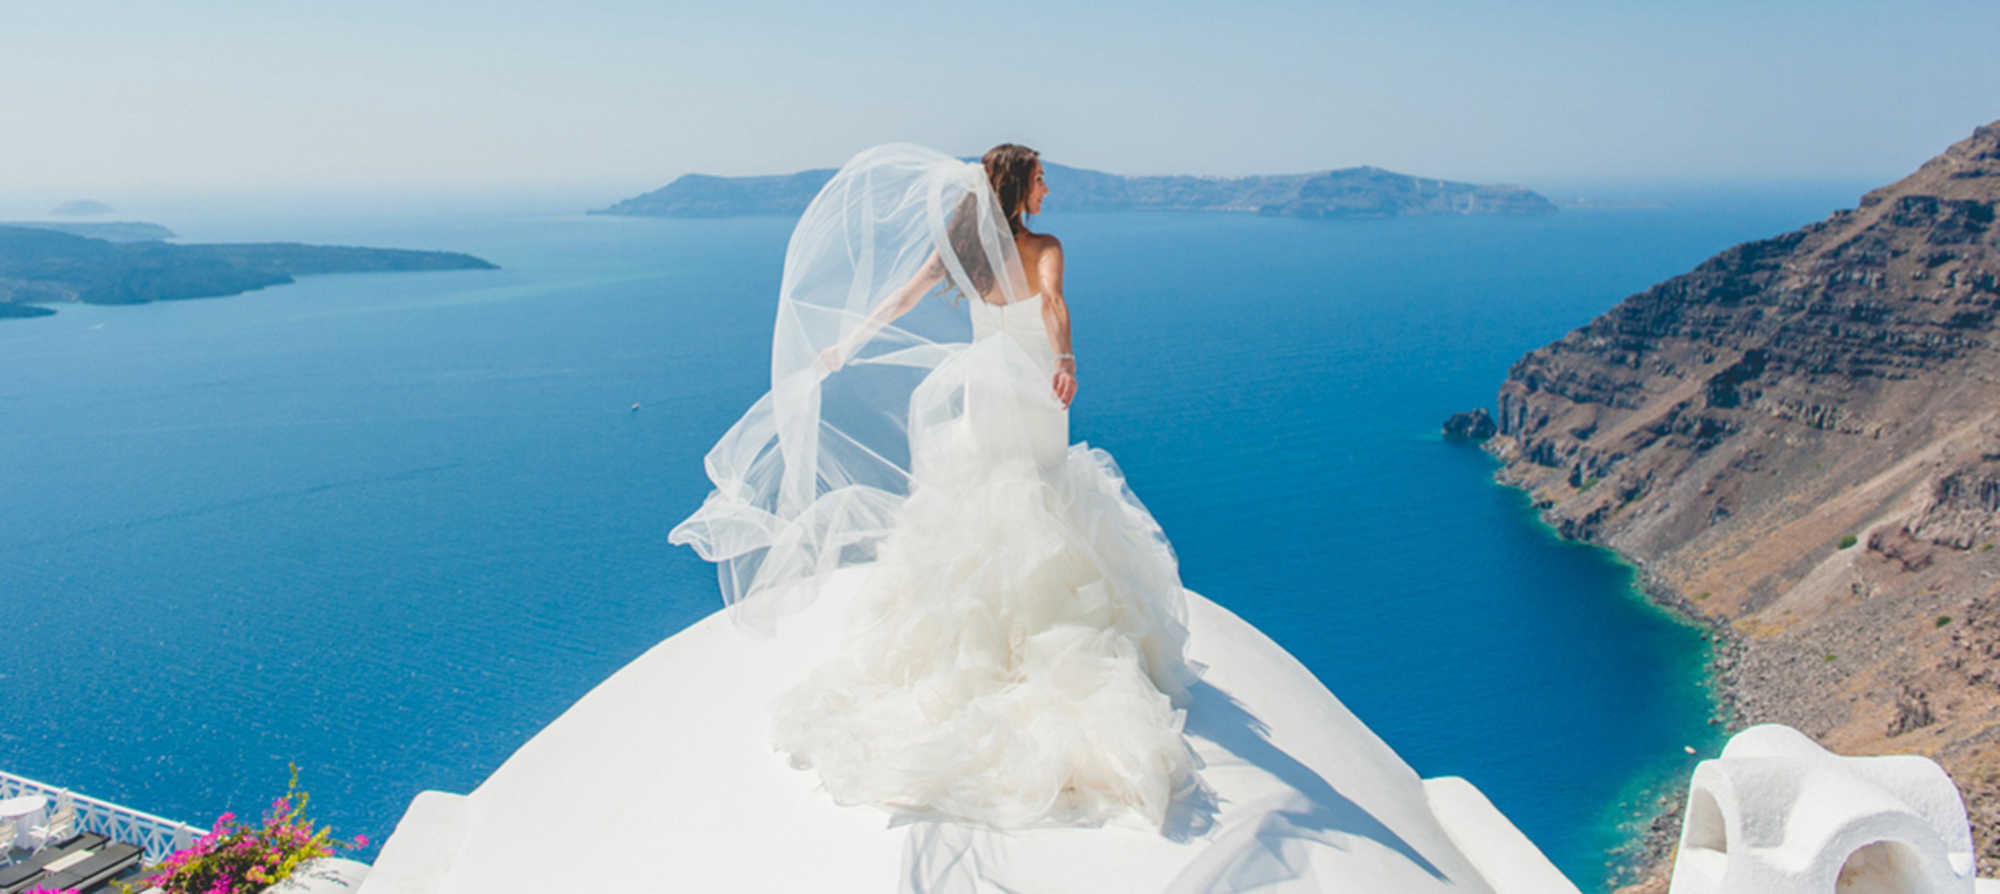 The Fall Movie Wallpaper Santorini Wedding Photographers Studiophosart